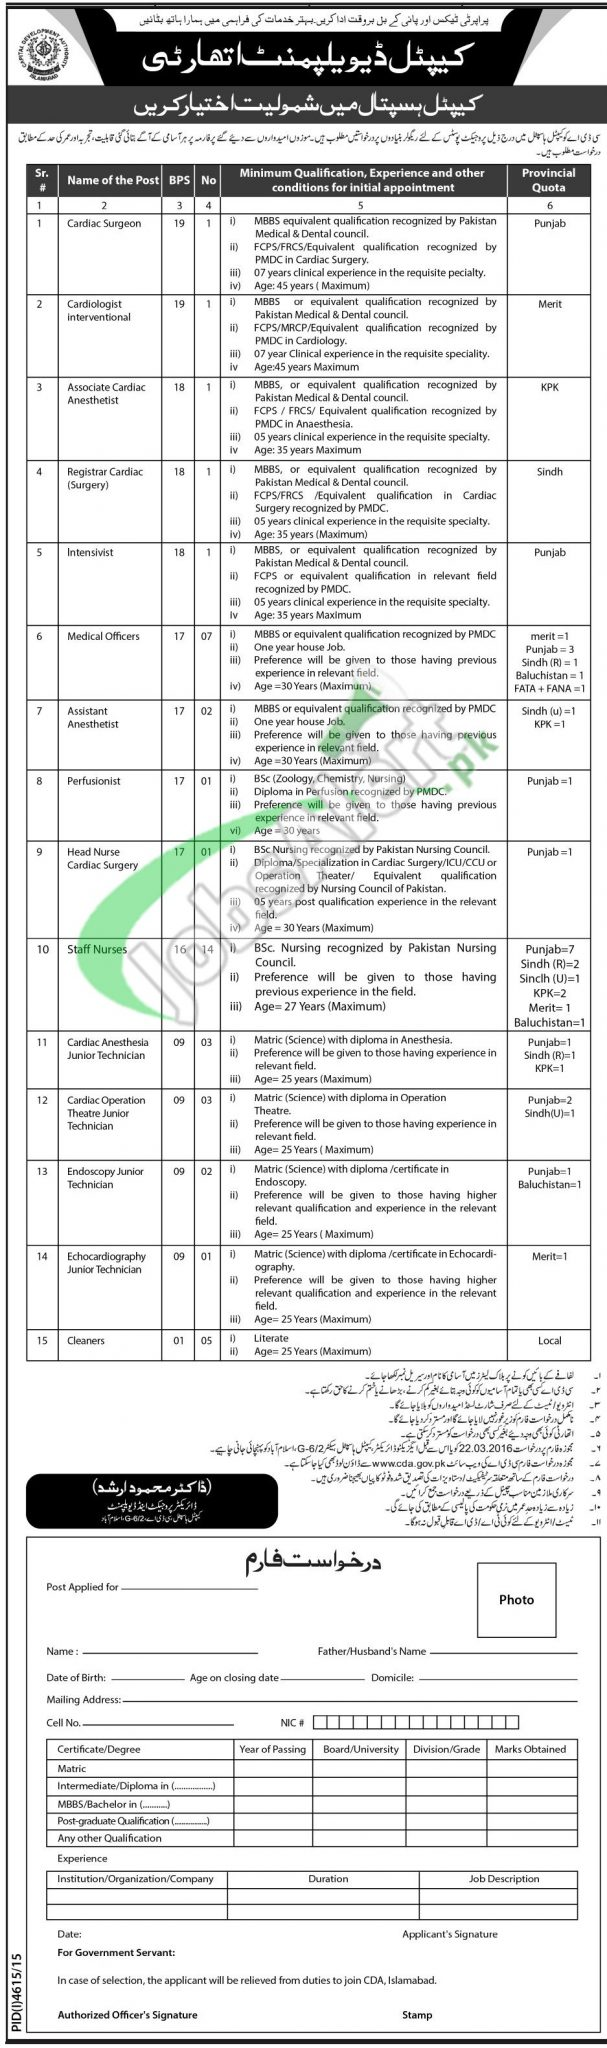 CDA Jobs Application Form 2016 March Islamabad Download | Jobs in ...